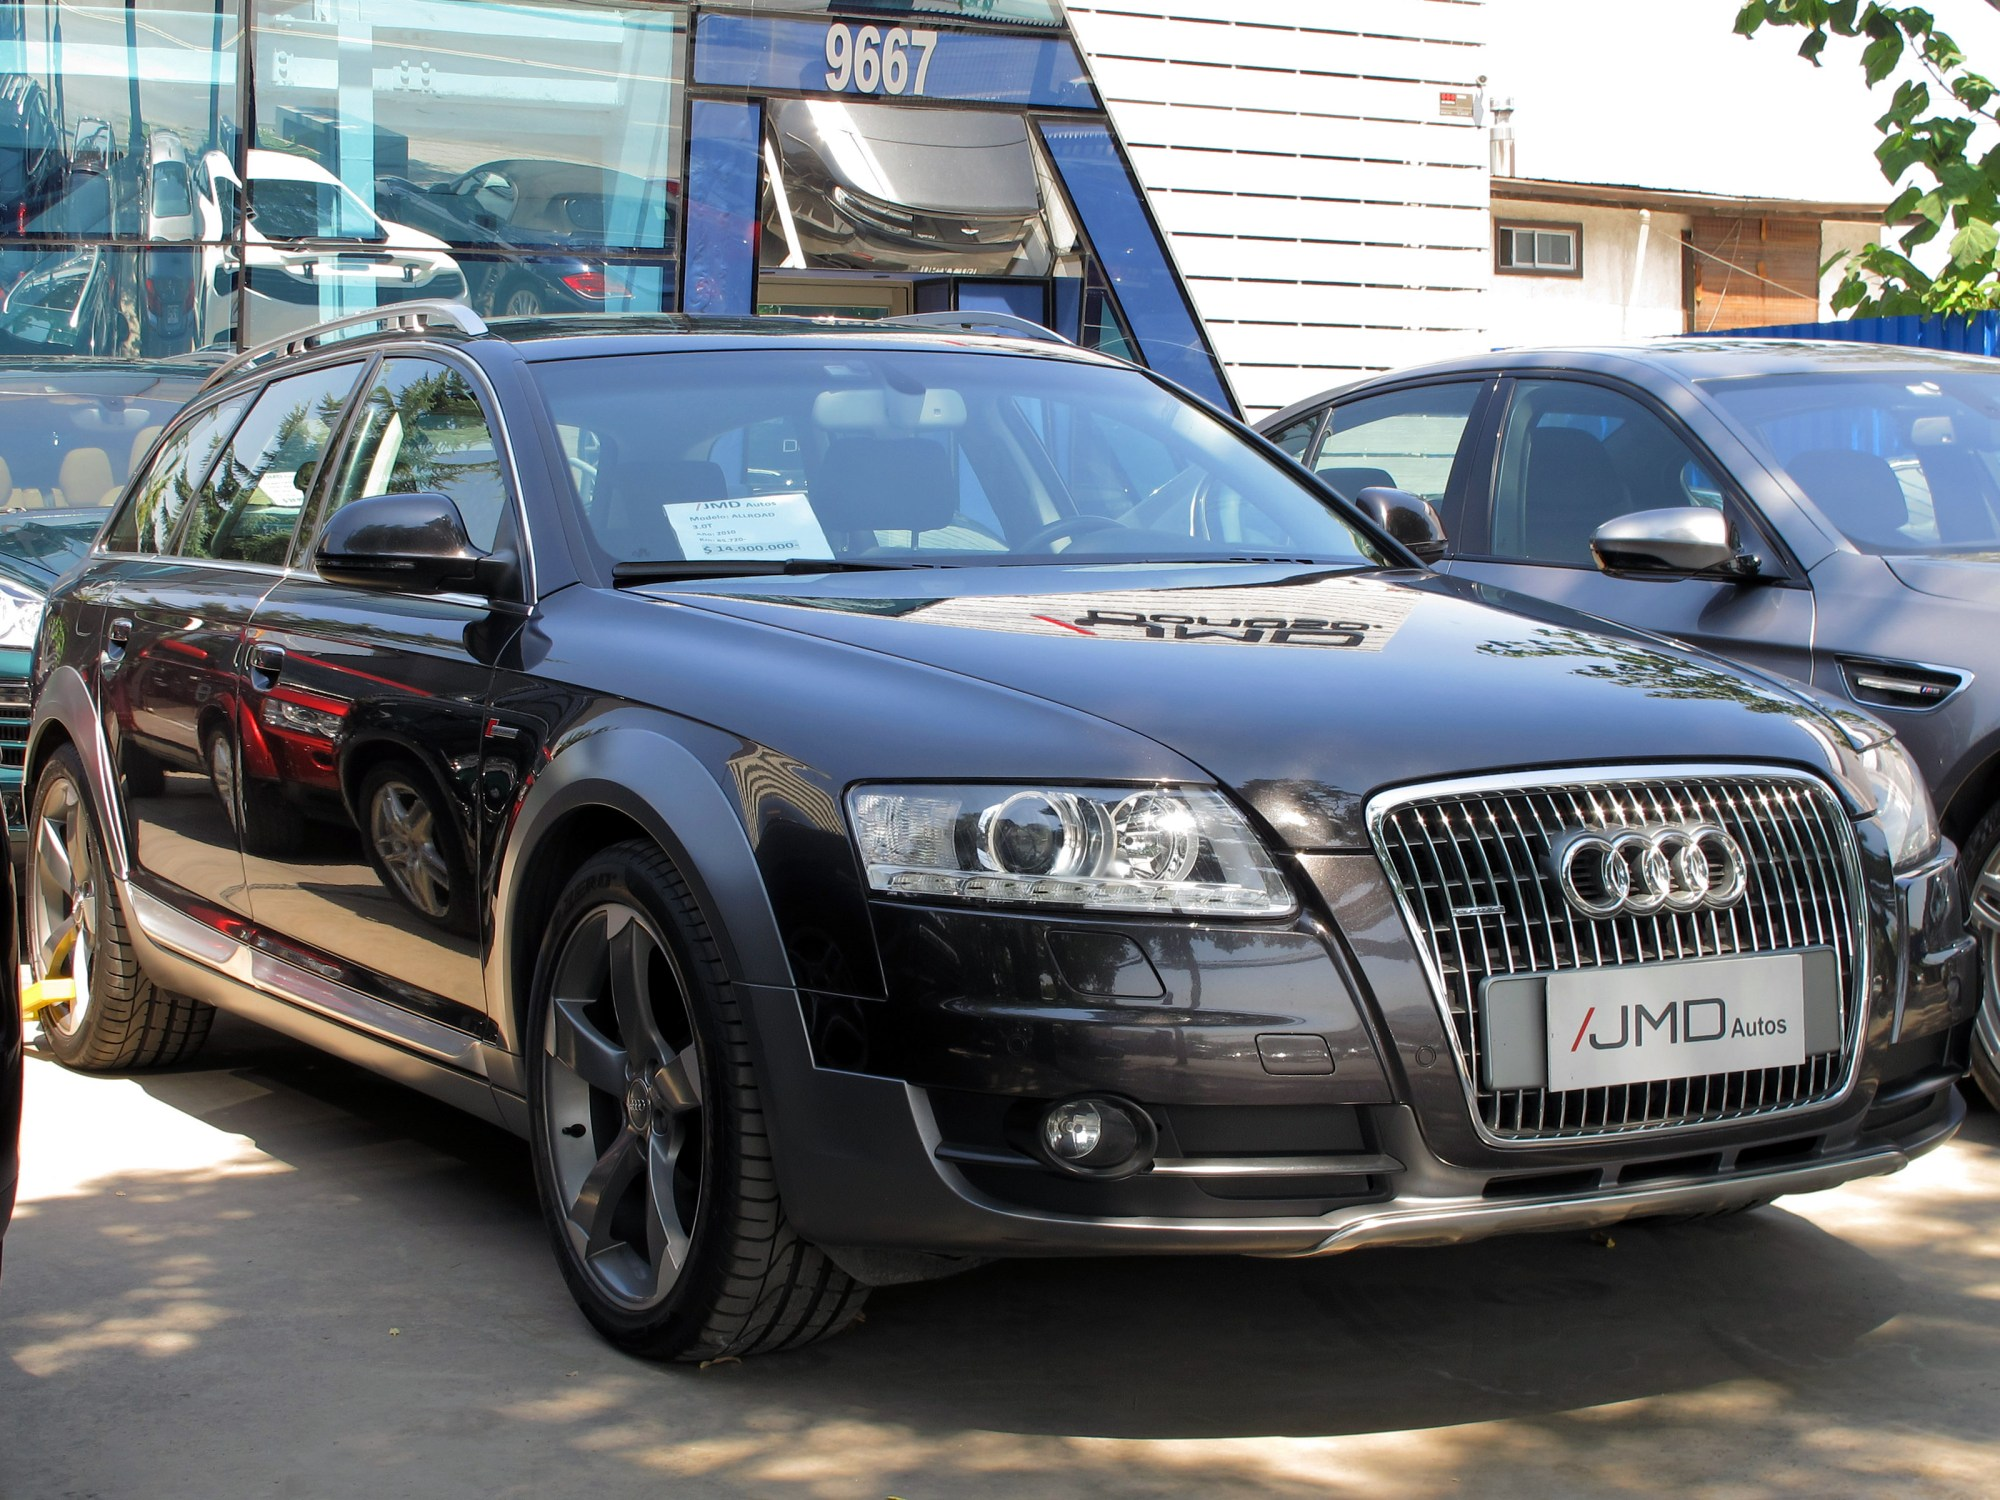 hight resolution of file audi a6 allroad 3 0t supercharged quattro 2010 17269033856 jpg